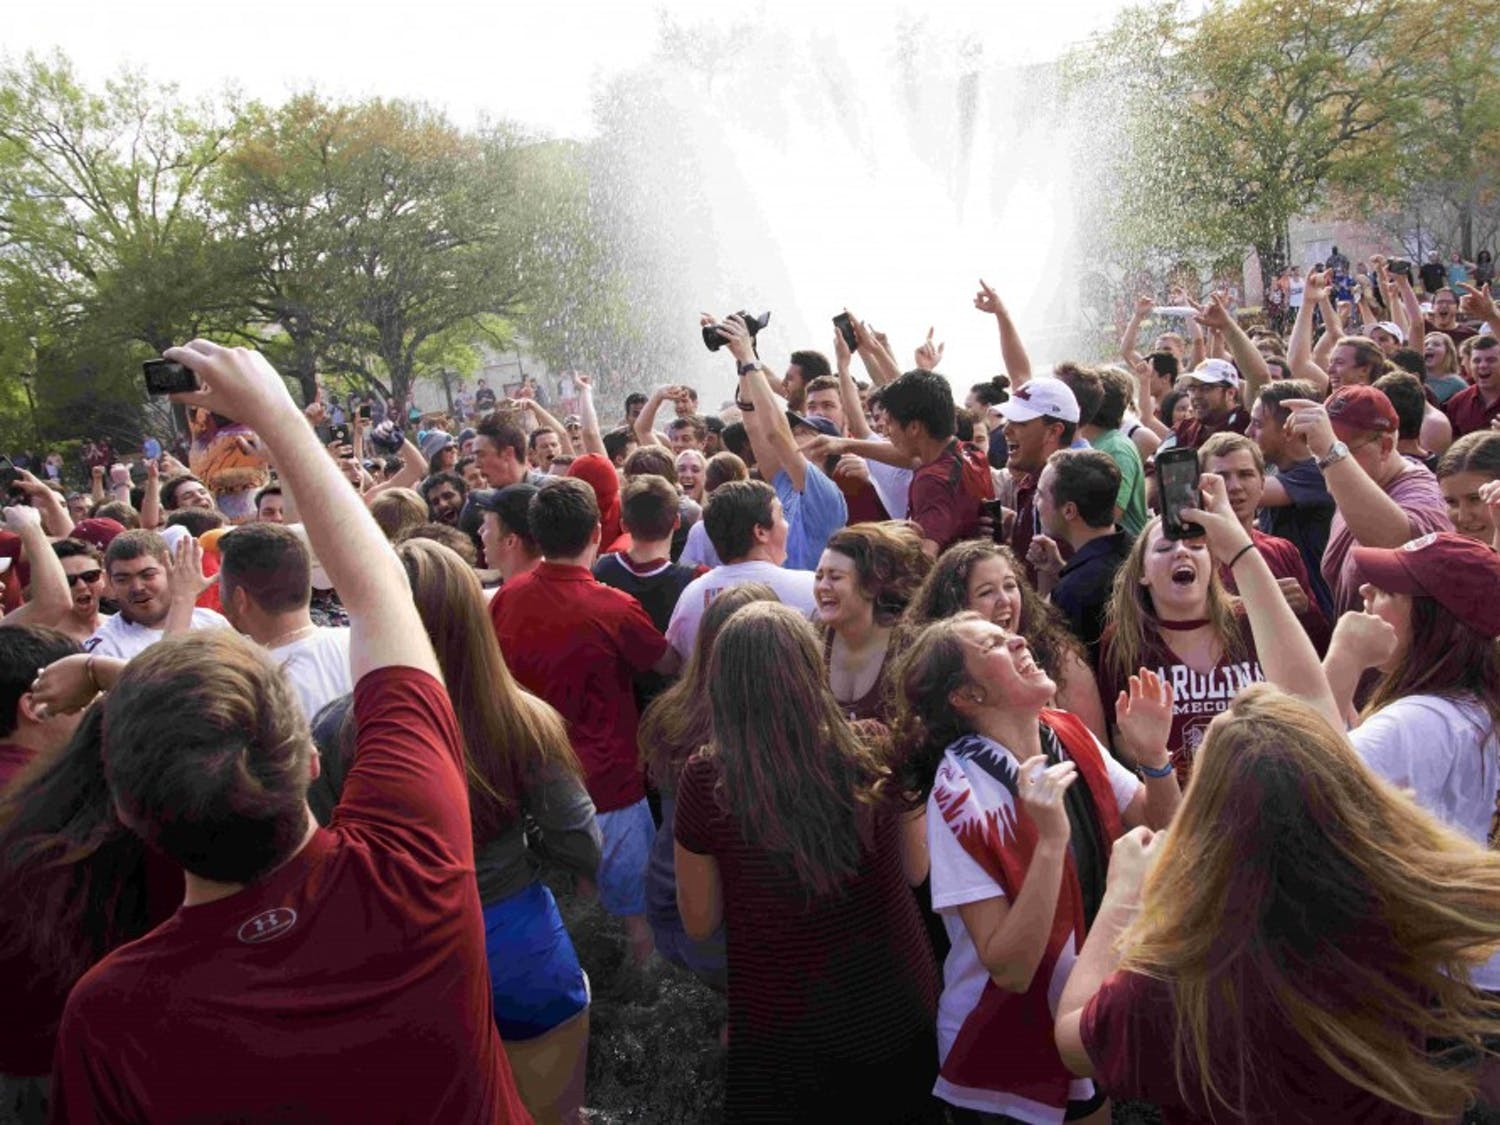 Students jump in the fountain to celebrate the Gamecocks men's basketball team beating Florida in the Elite Eight and securing its place in the Final Four in 2017.